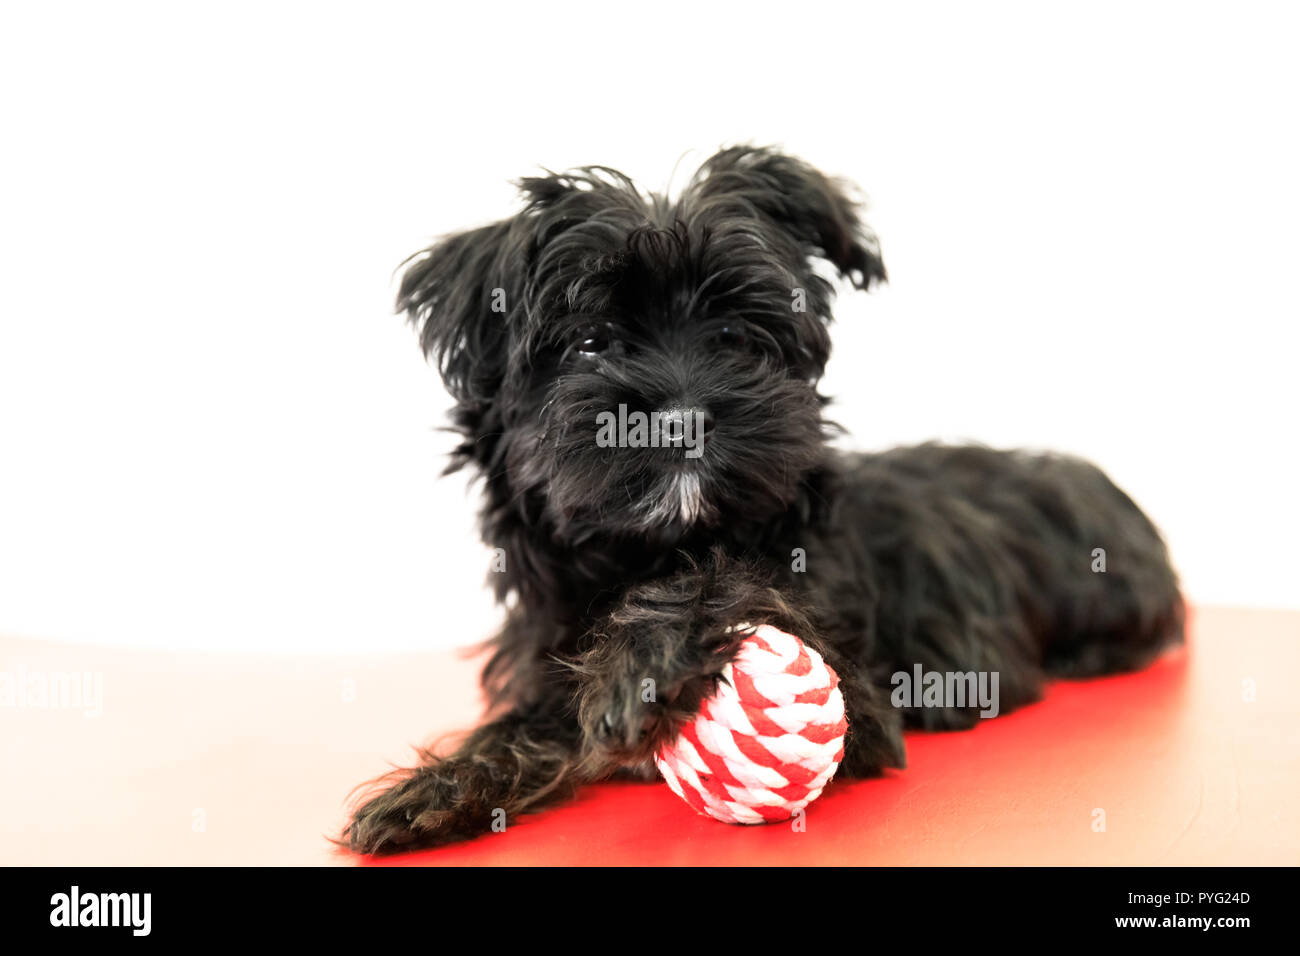 black Yorktese Malkie dog waiting to play on the sofa, Isolated on white background with copy space. Breed from Maltese and Yorkshire Terrier dogs. - Stock Image